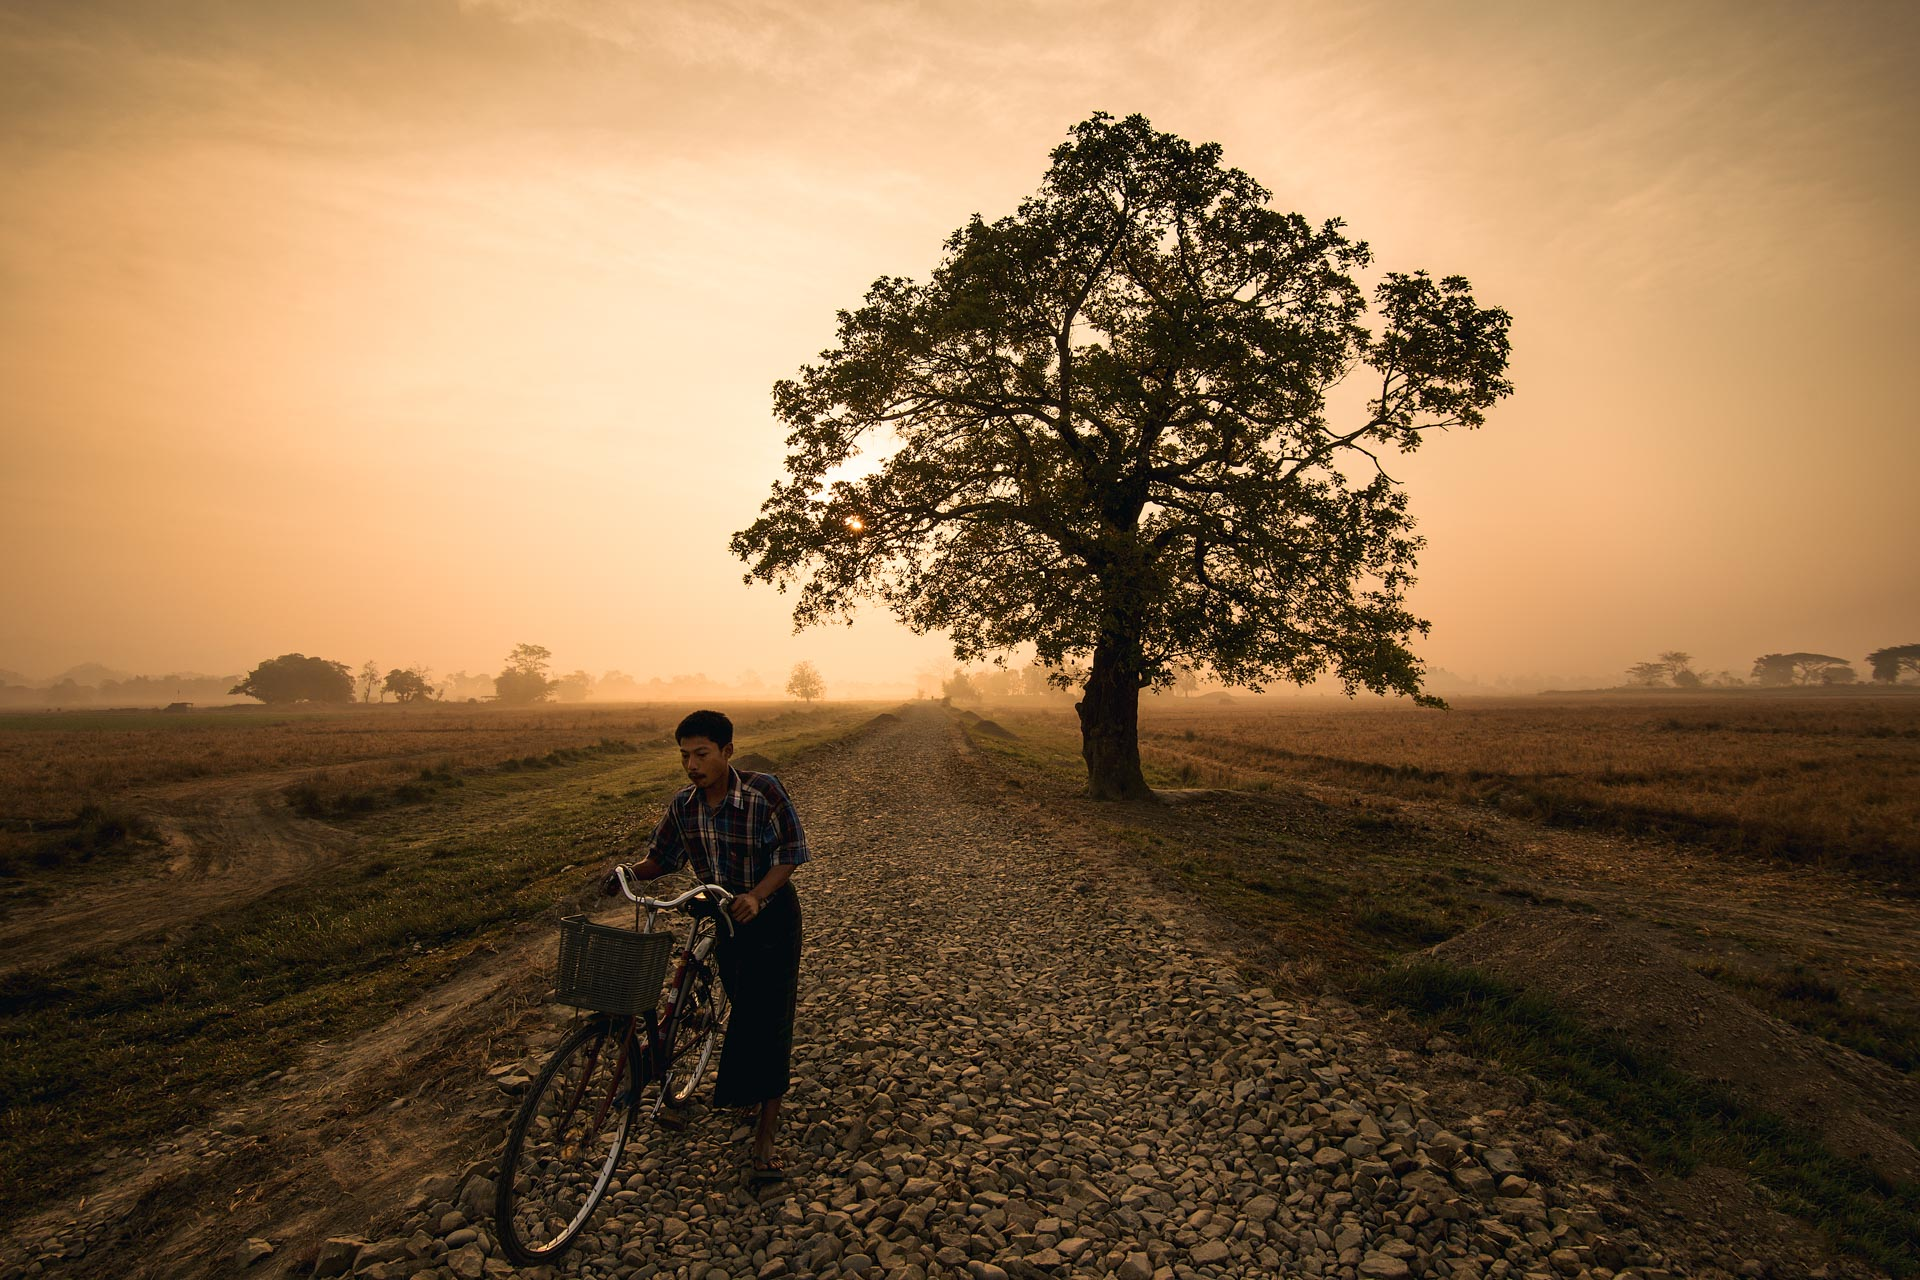 Cyclist on a foggy morning outside of Mrauk U. Myanmar